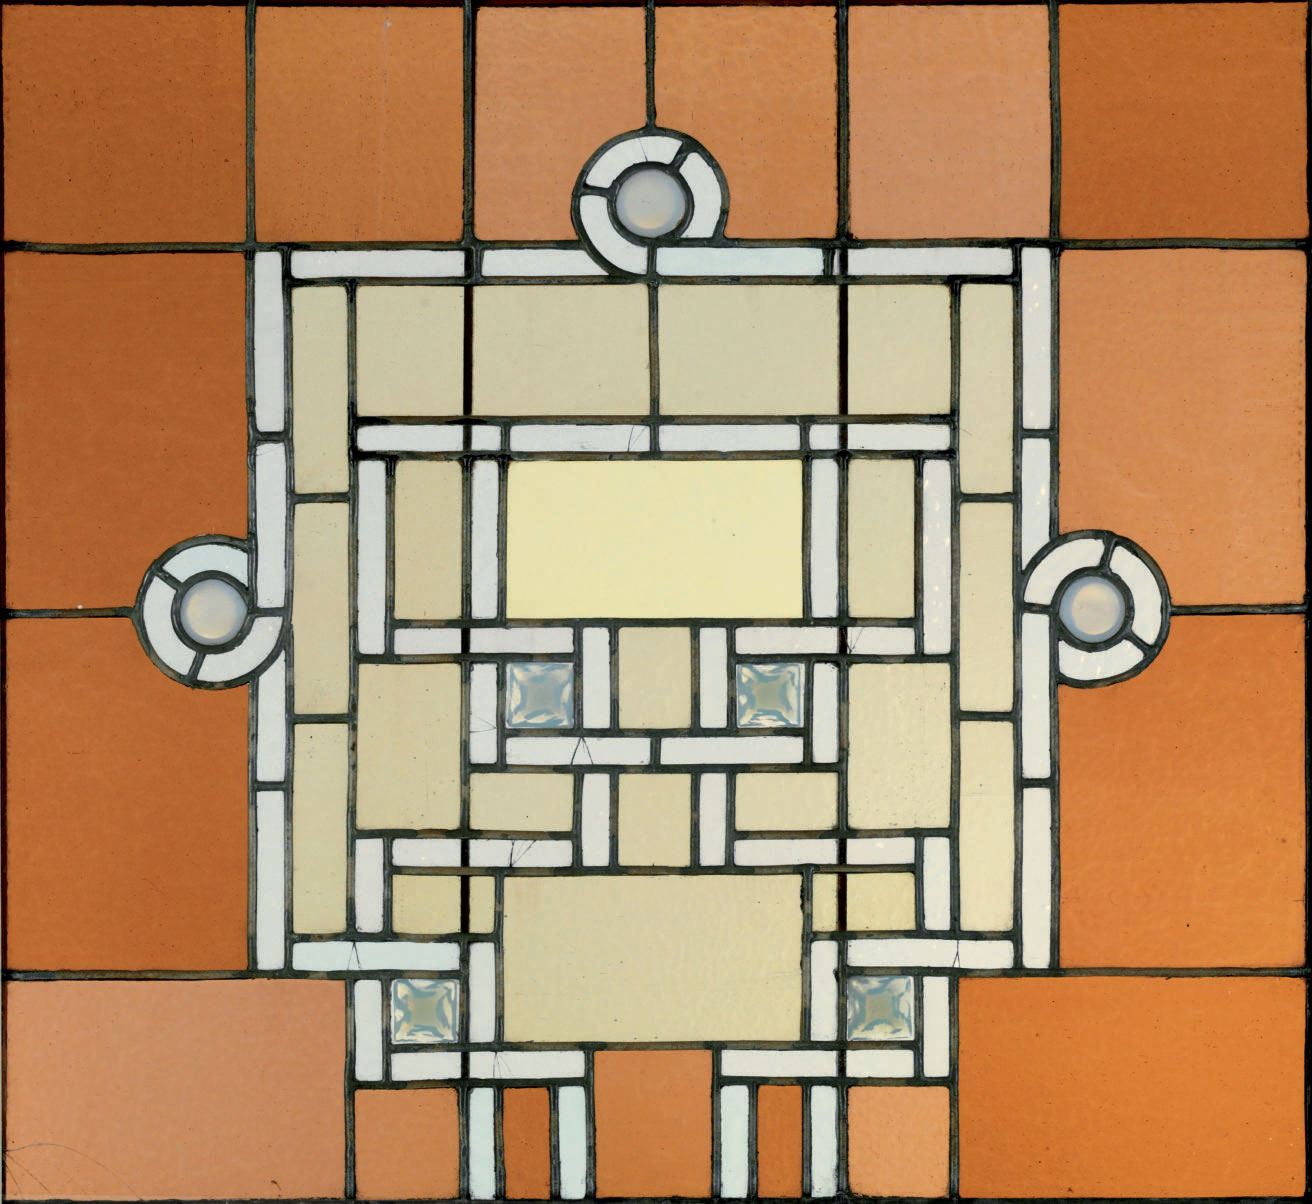 DANKMAR ADLER (1844-1900) AND LOUIS SULLIVAN (1856-1924)